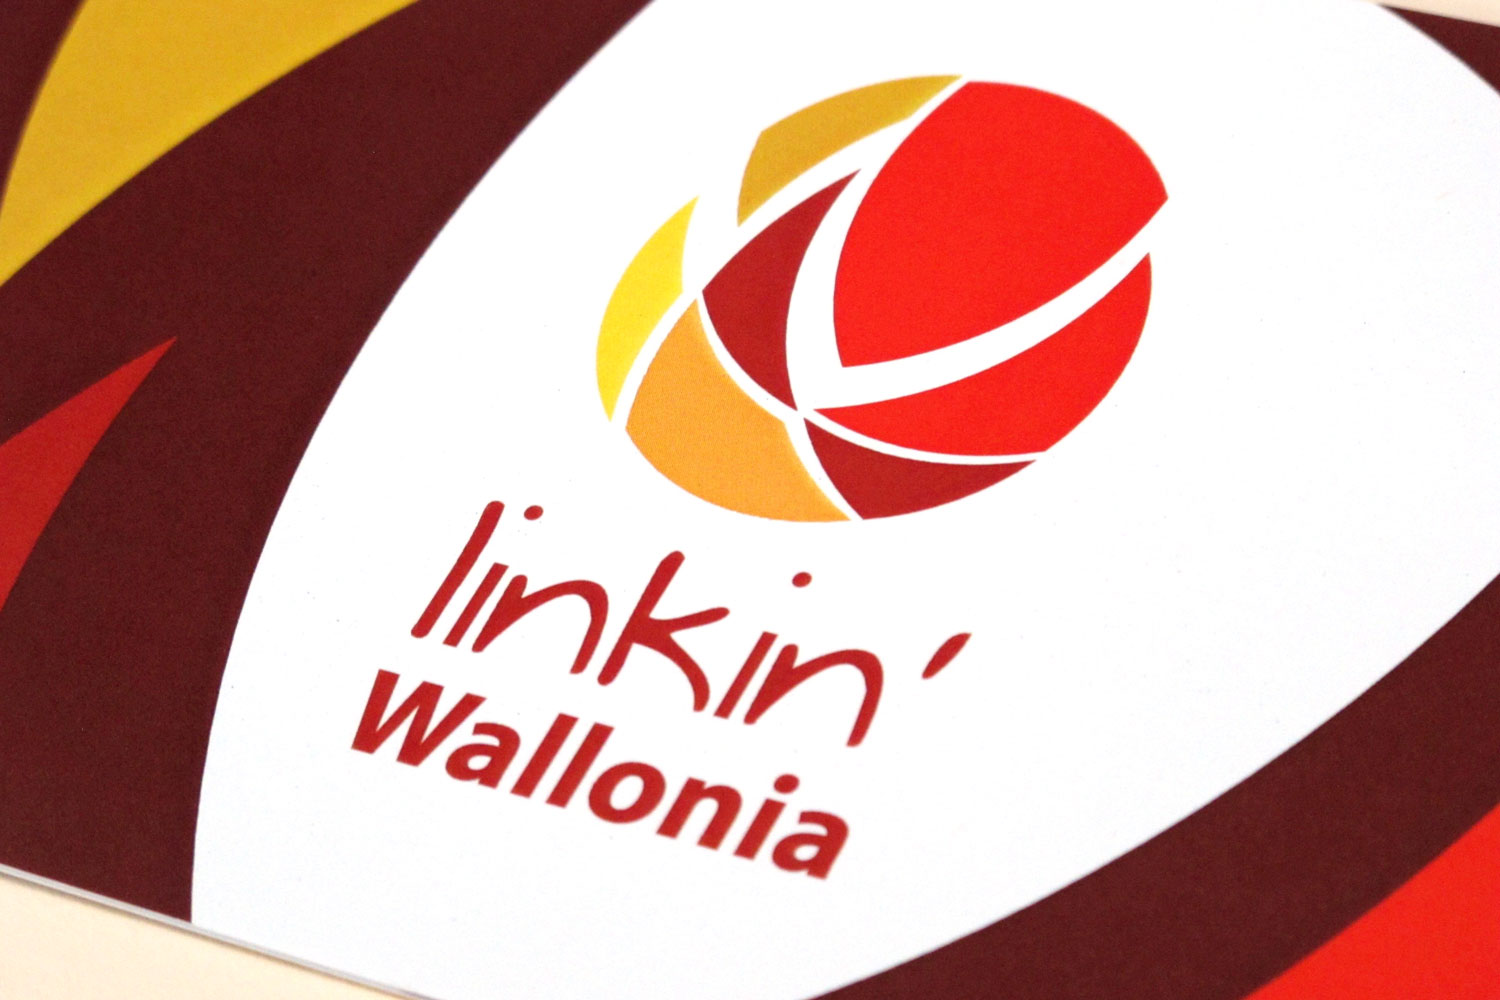 Linkin' Wallonia